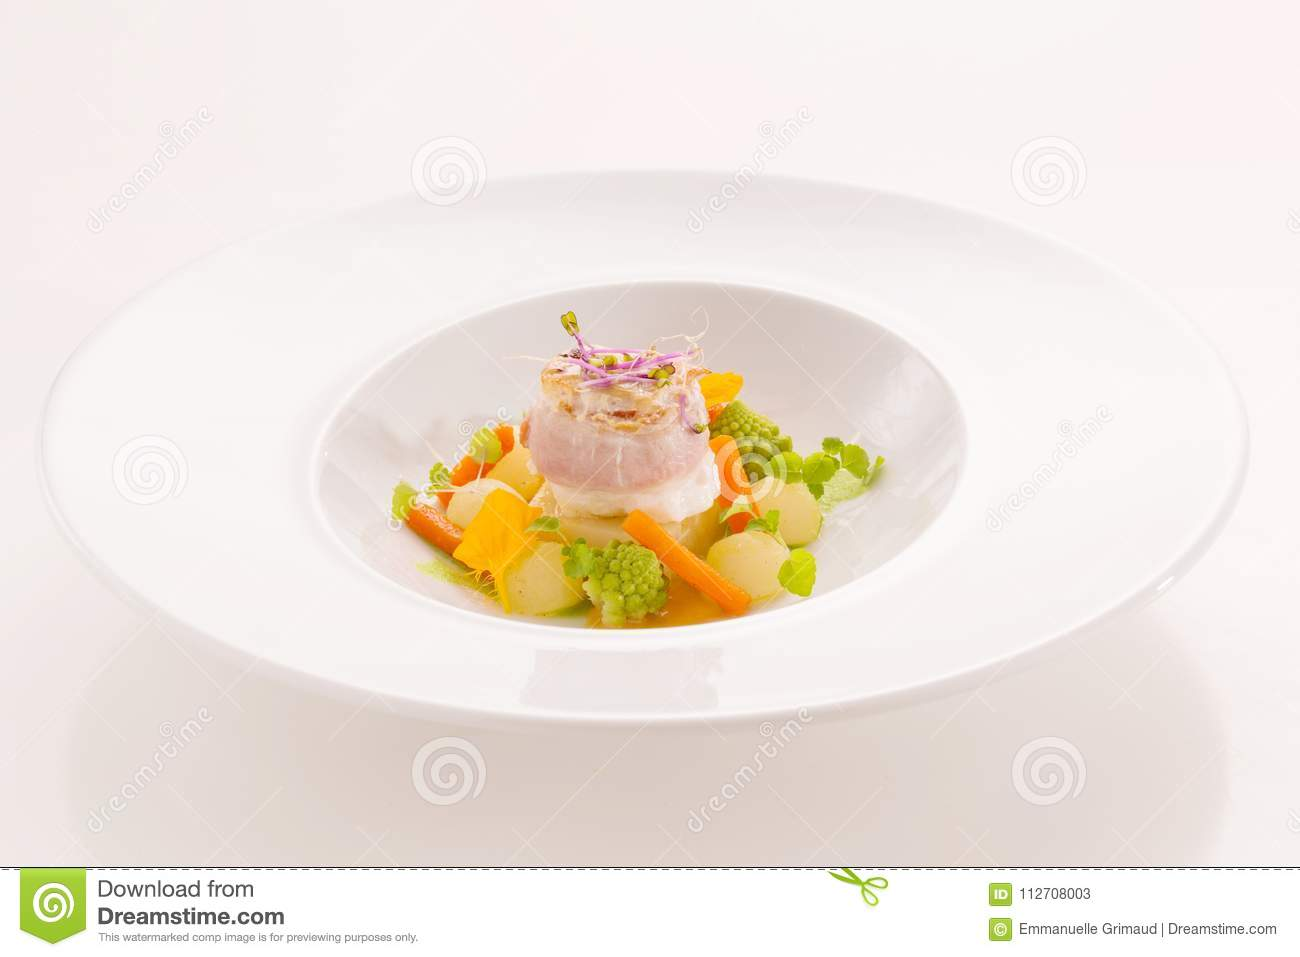 [Image: gourmet-dish-fish-small-vegetables-gourm...708003.jpg]